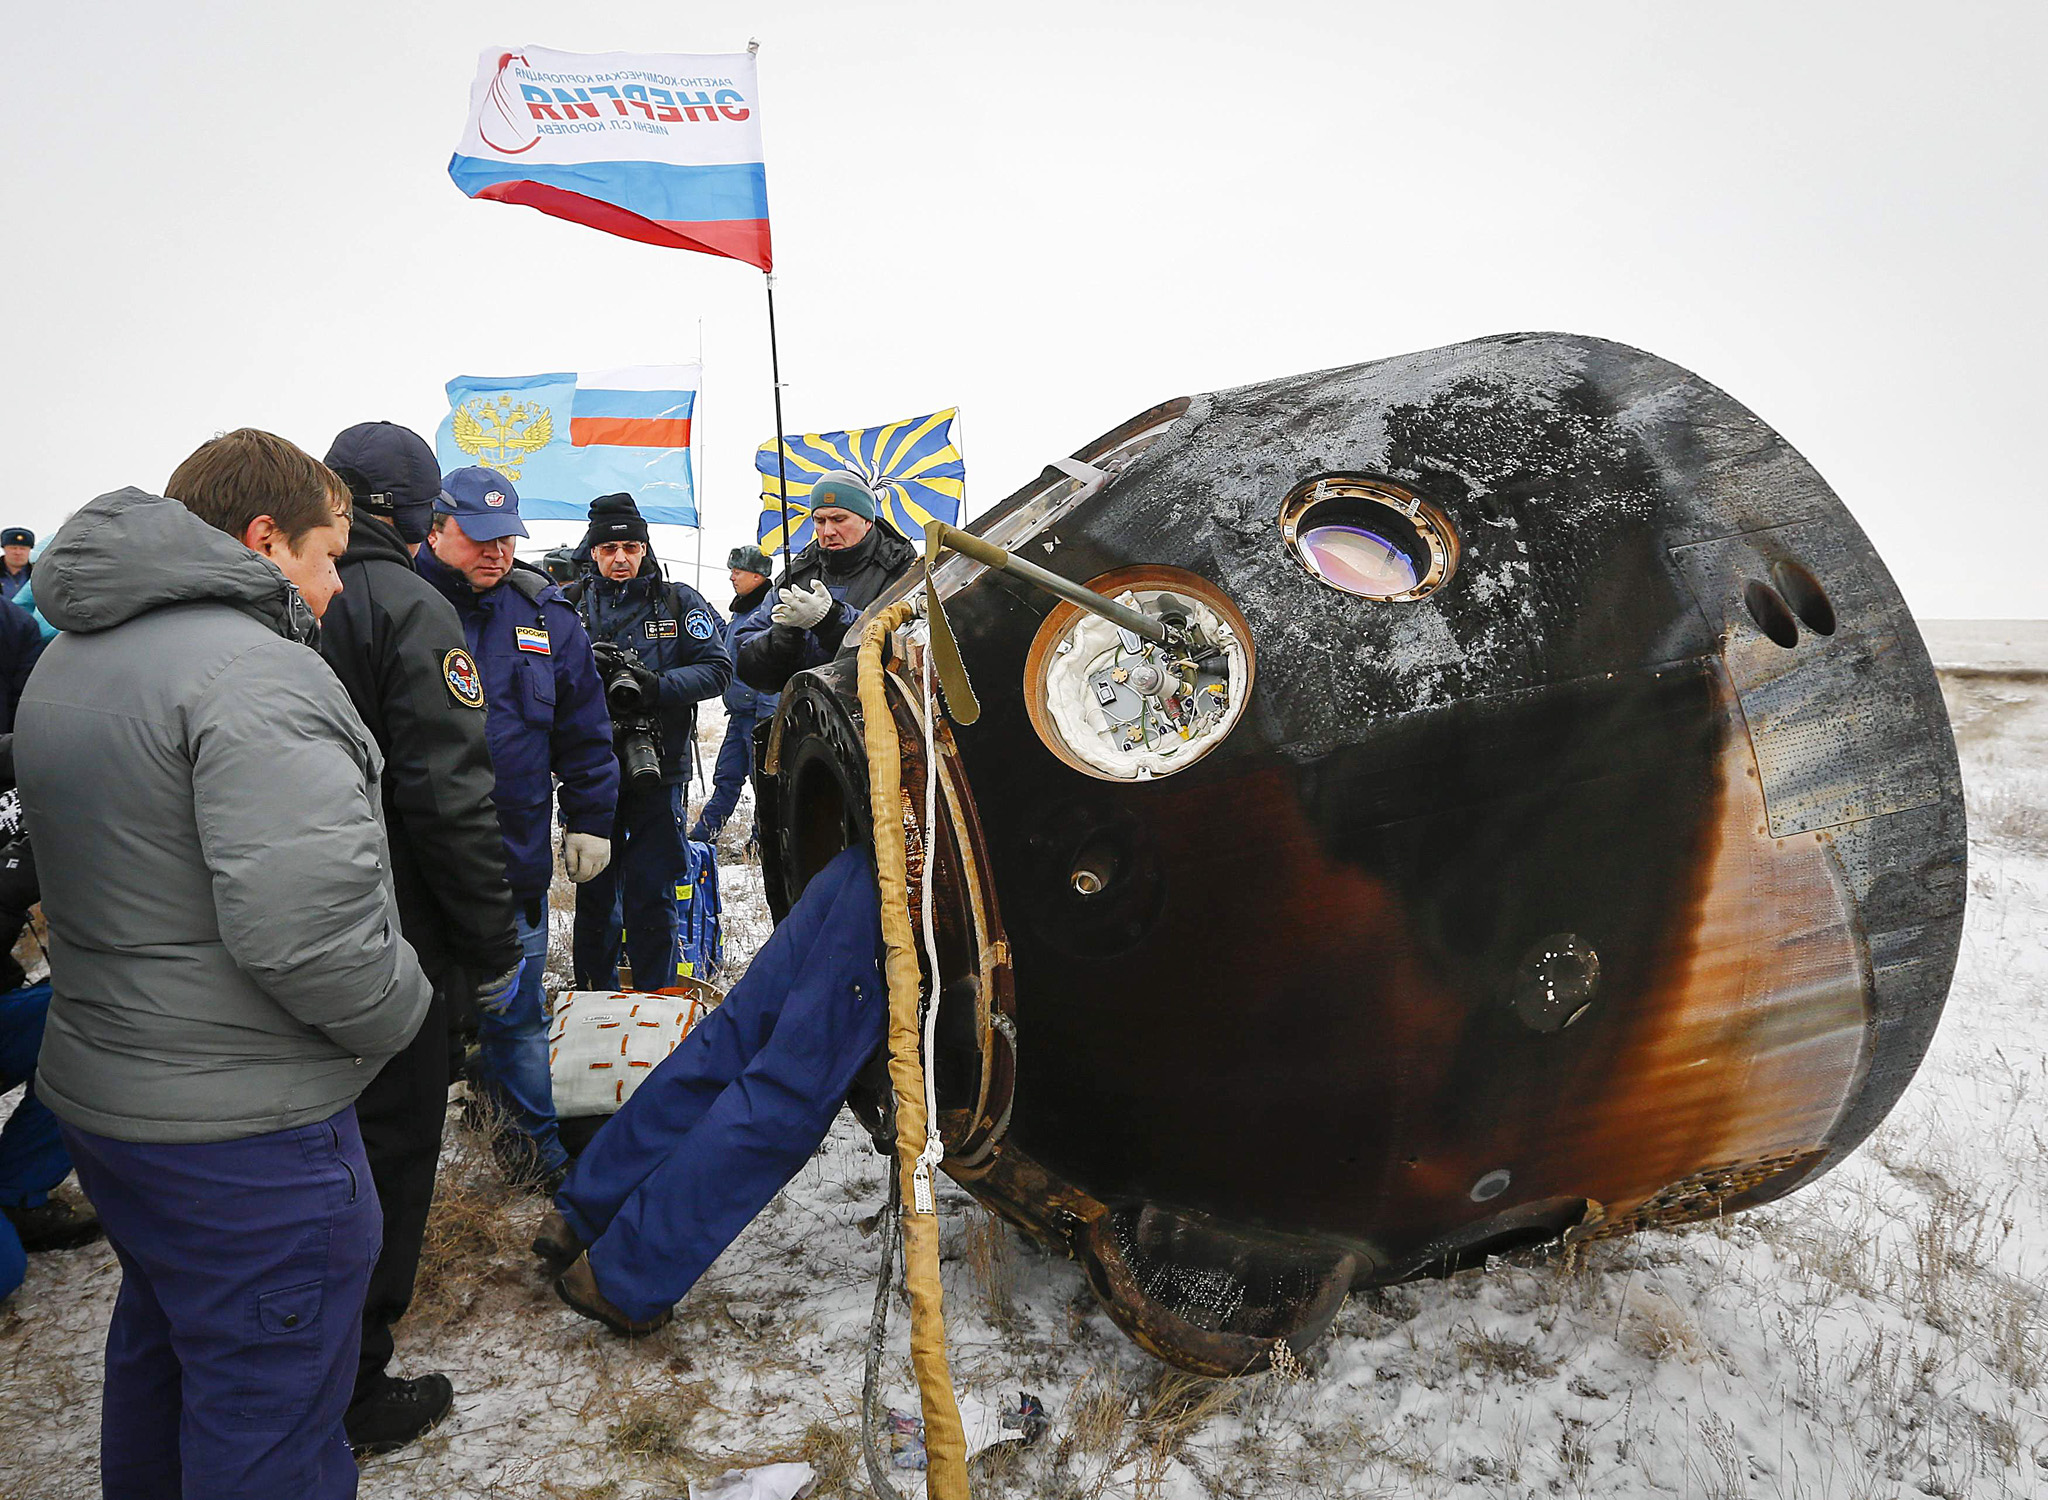 Ground personnel work on November 10, 20...Ground personnel work on November 10, 2014 next to the Soyuz TMA-13M capsule, carrying International Space Station (ISS) crew members of Alexander Gerst of Germany, Maxim Surayev of Russia and Reid Wiseman of the United States, after its landing near the town of Arkalyk in northern Kazakhstan. A veteran Russian cosmonaut and two International Space Station crewmates, one from the United States and one from Germany, returned safely to Earth on November 10 with a parachute landing of their Soyuz capsule in Kazakhstan, ending 5,5 months in orbit.    AFP PHOTO / POOL / SHAMIL ZHUMATOVSHAMIL ZHUMATOV/AFP/Getty Images